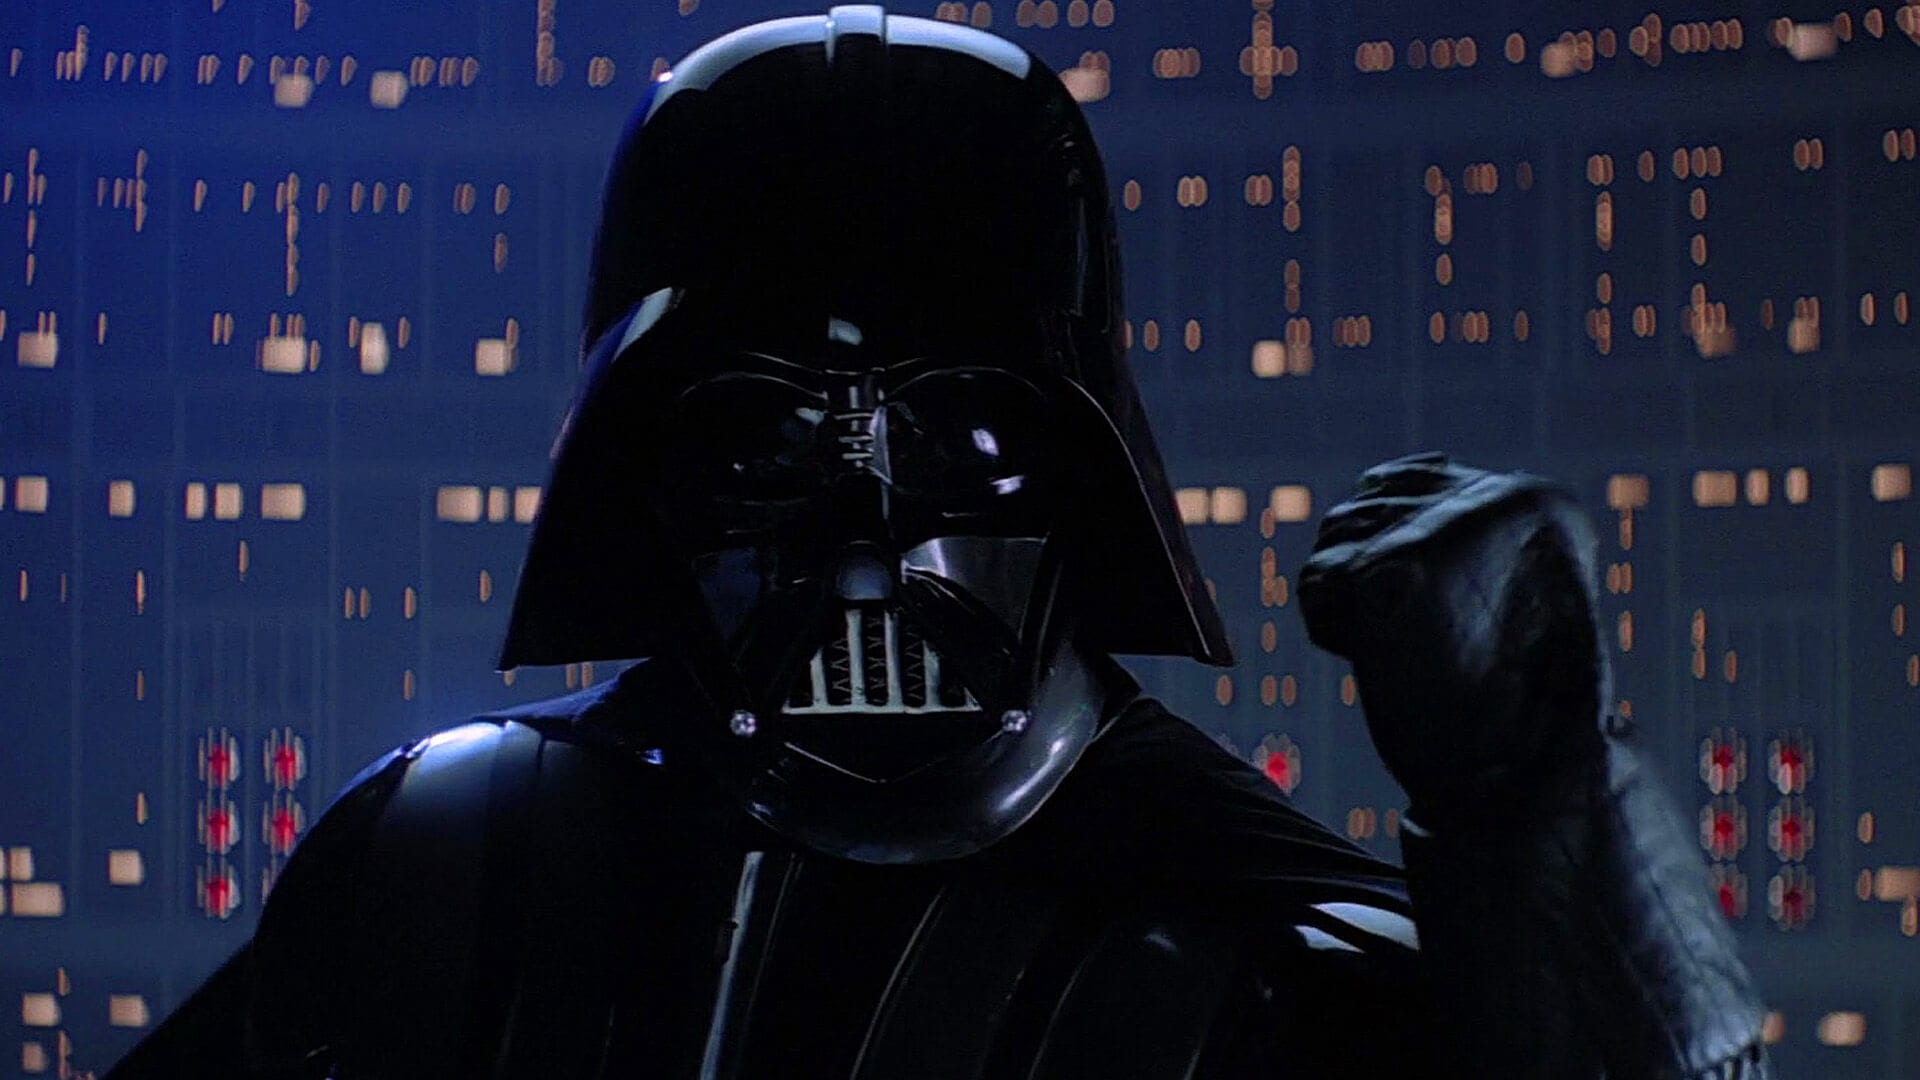 Resultado de imagen de darth vader empire strikes back